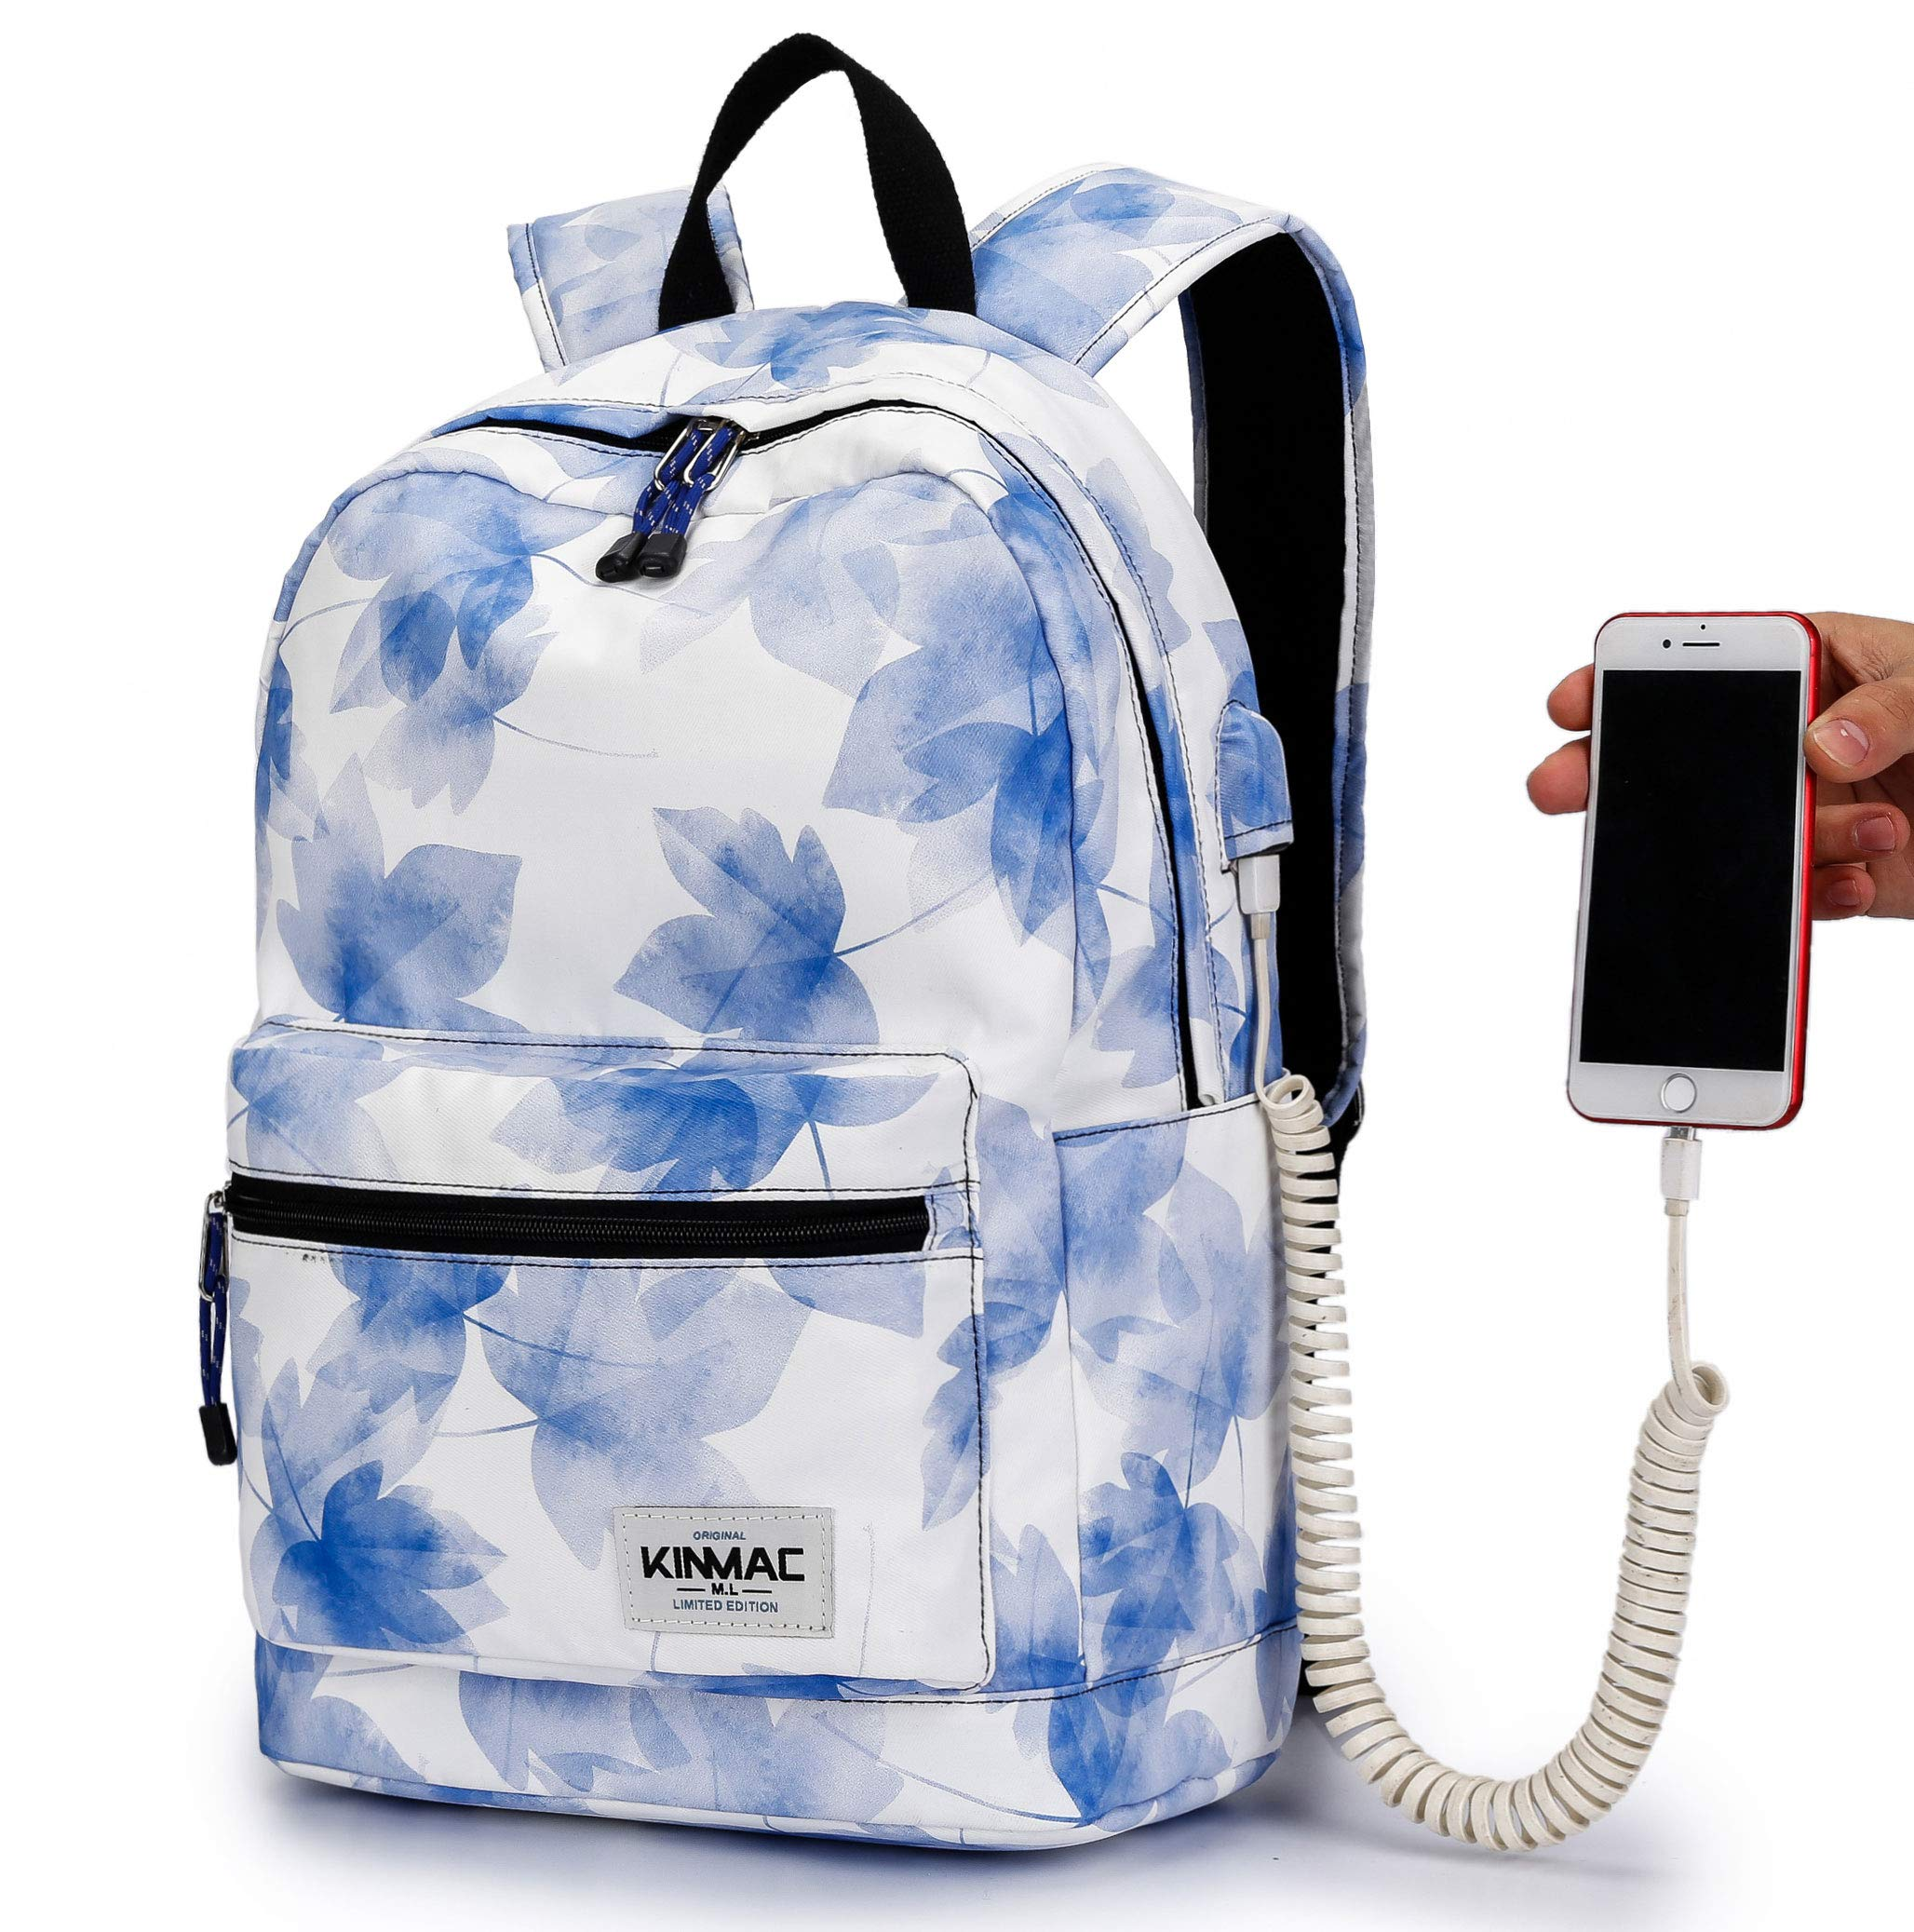 Kinmac Waterproof Laptop Travel Outdoor Backpack with USB Charging Port for 13 inch 14 inch and 15.6 inch Laptop (Blue Maple) by Kinmac